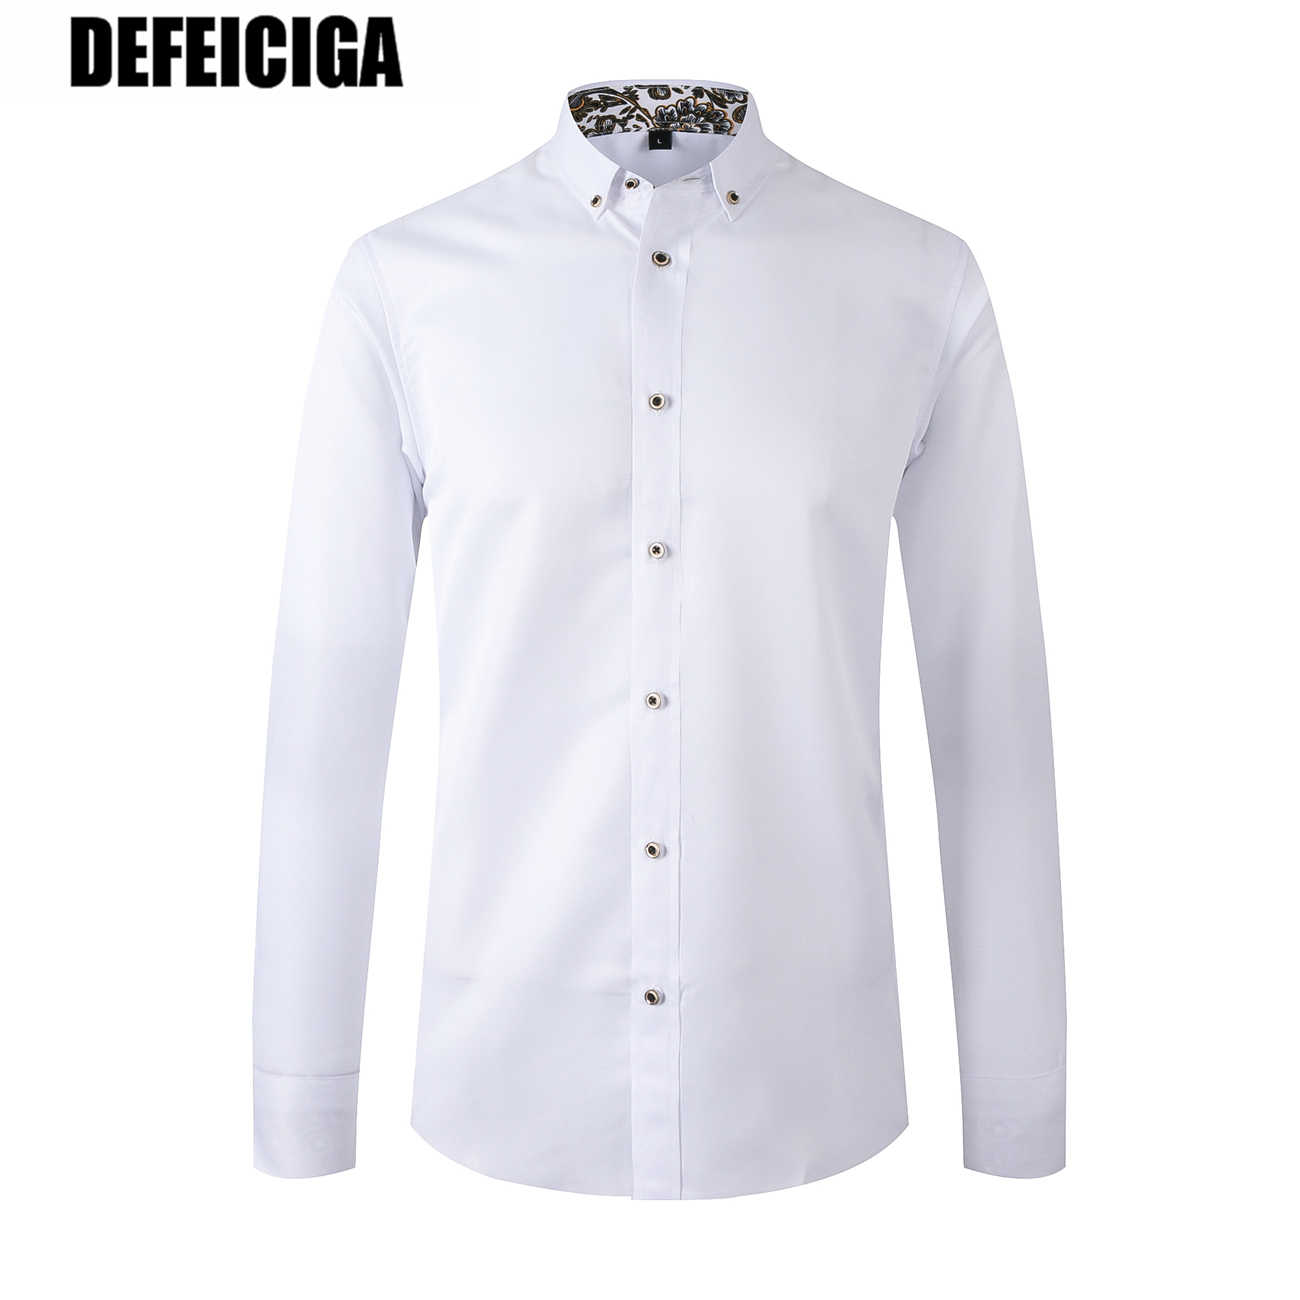 2019 DEFEICIGA Nieuwe Collectie Mannen Shirt Lange Mouwen Man Business Casual Shirts Twill Wit Shirt Merk Formele Shirts 046